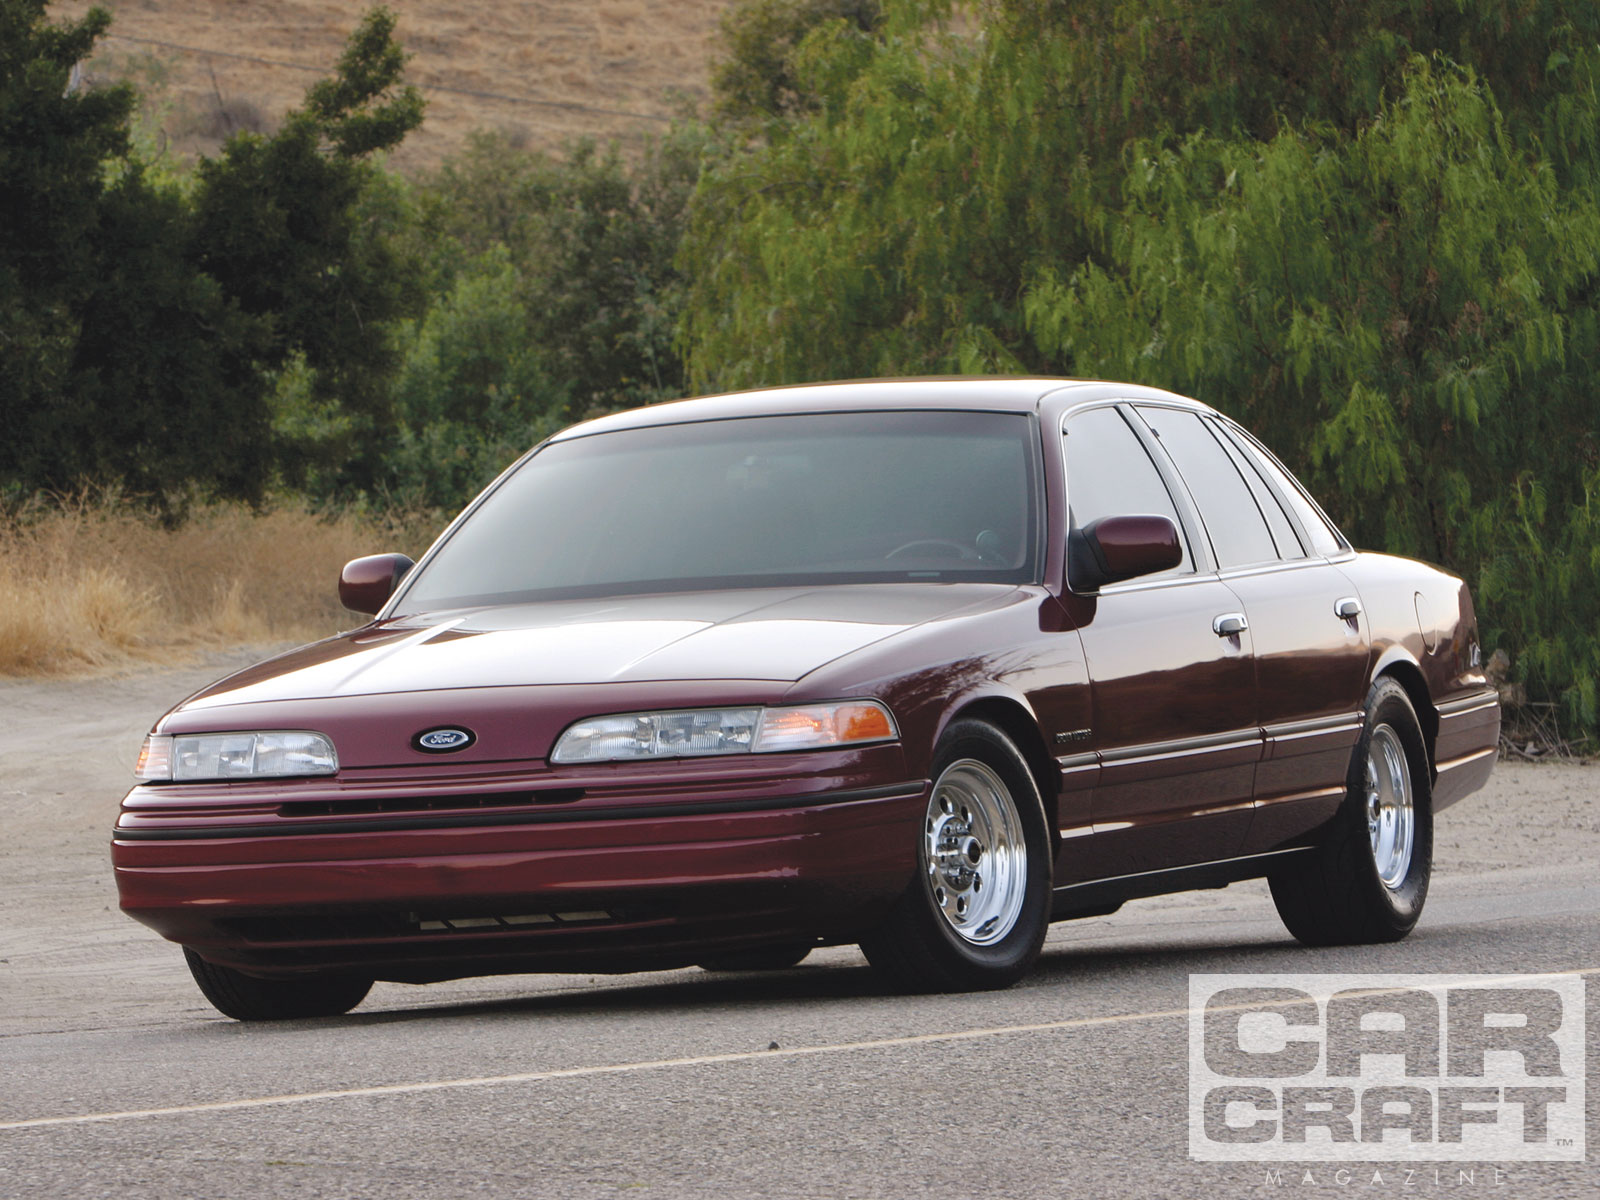 1993 Crown Victoria Mpg Ford First Generation 1992 1997 Fuse Box Photos Informations Articles 1600x1200